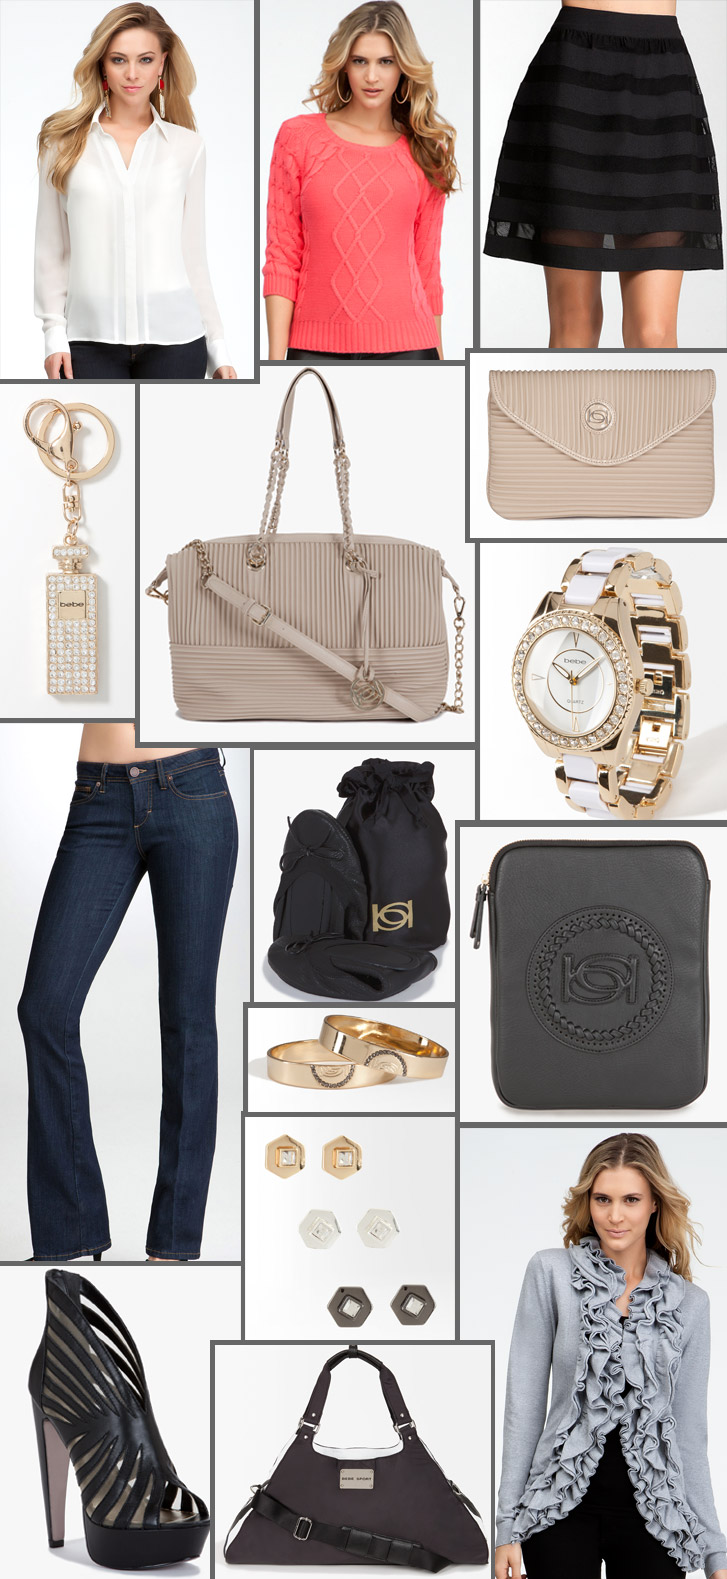 STYLUST-Gift-Ideas--The-Sophisticate